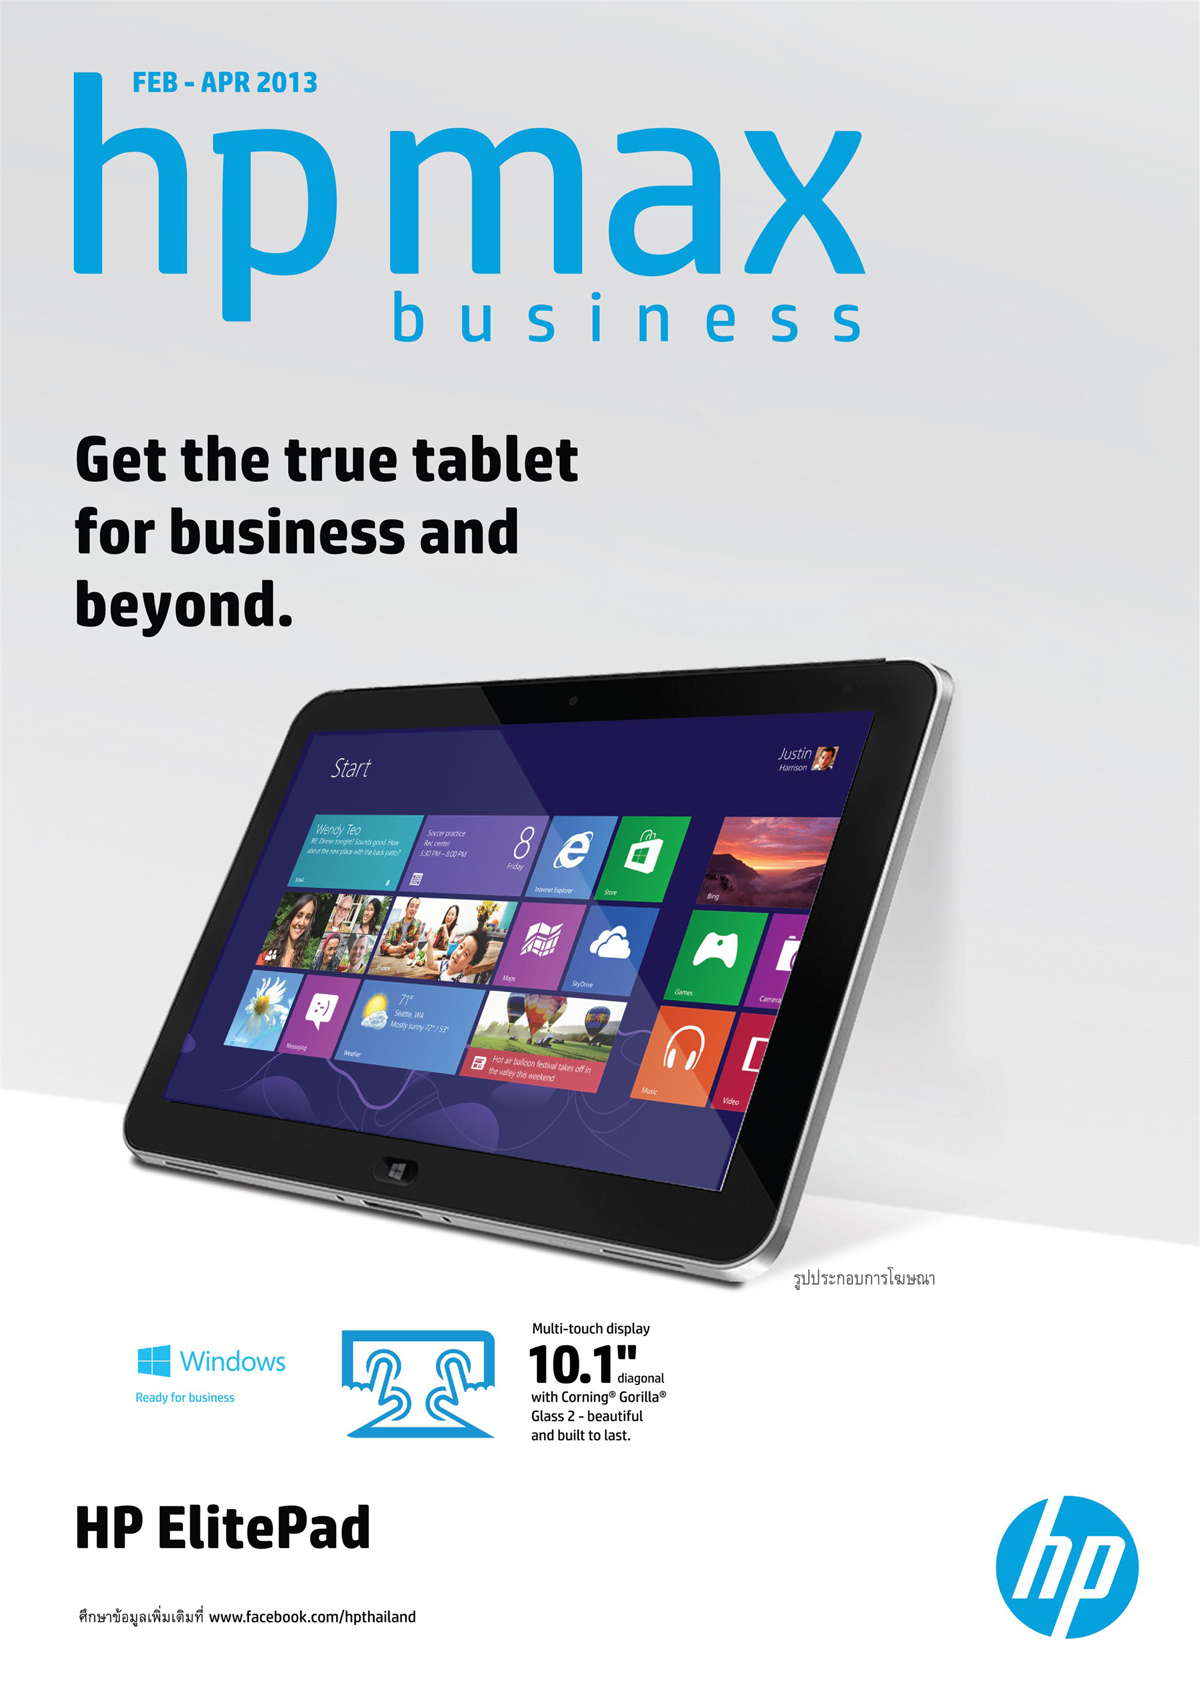 HP Business 02 2013 1